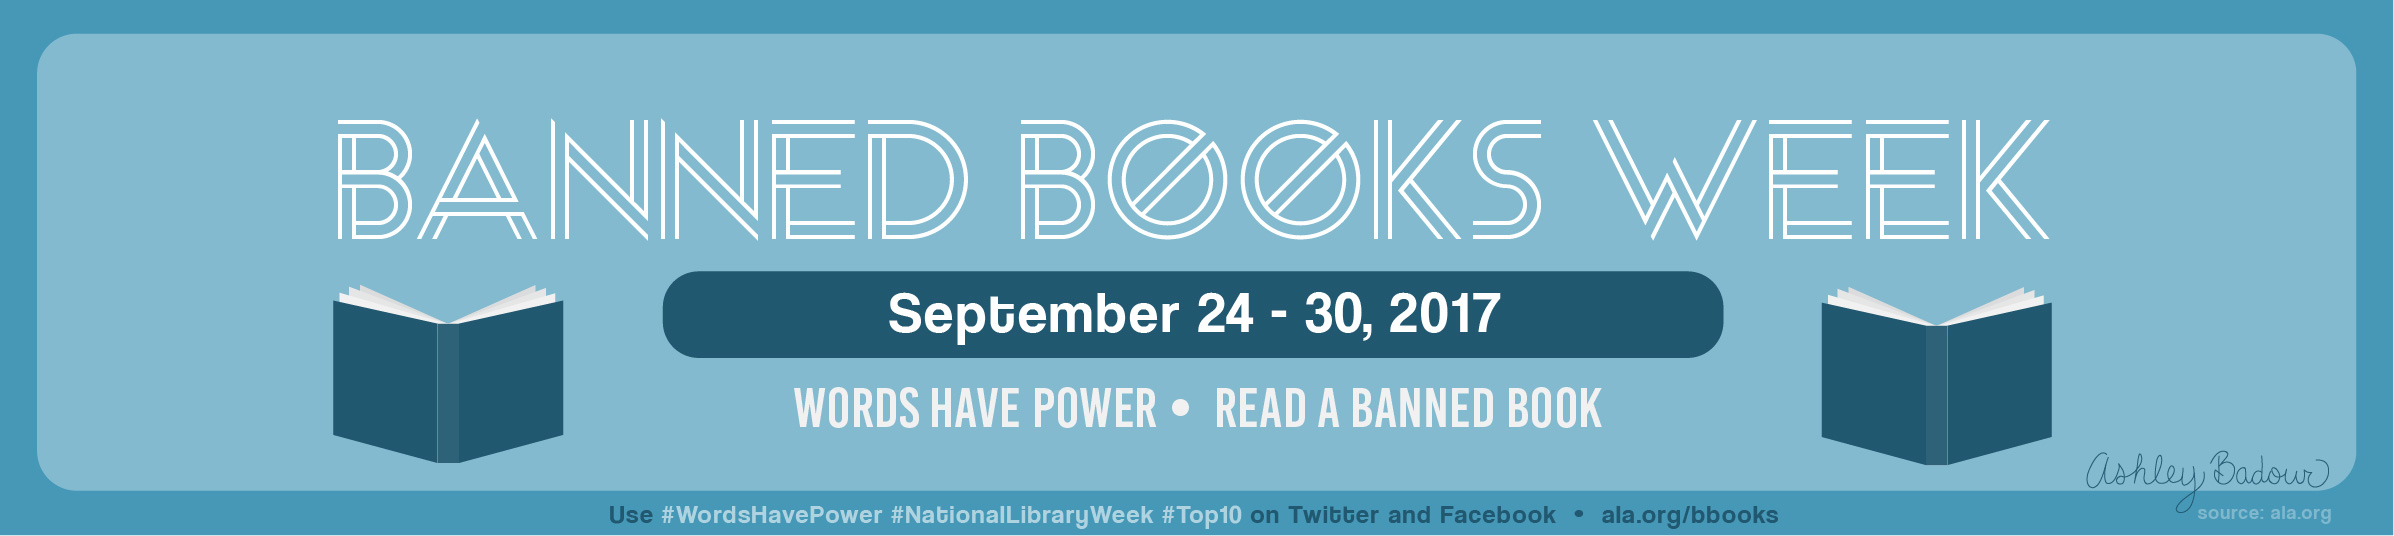 Banned Book Week 2017